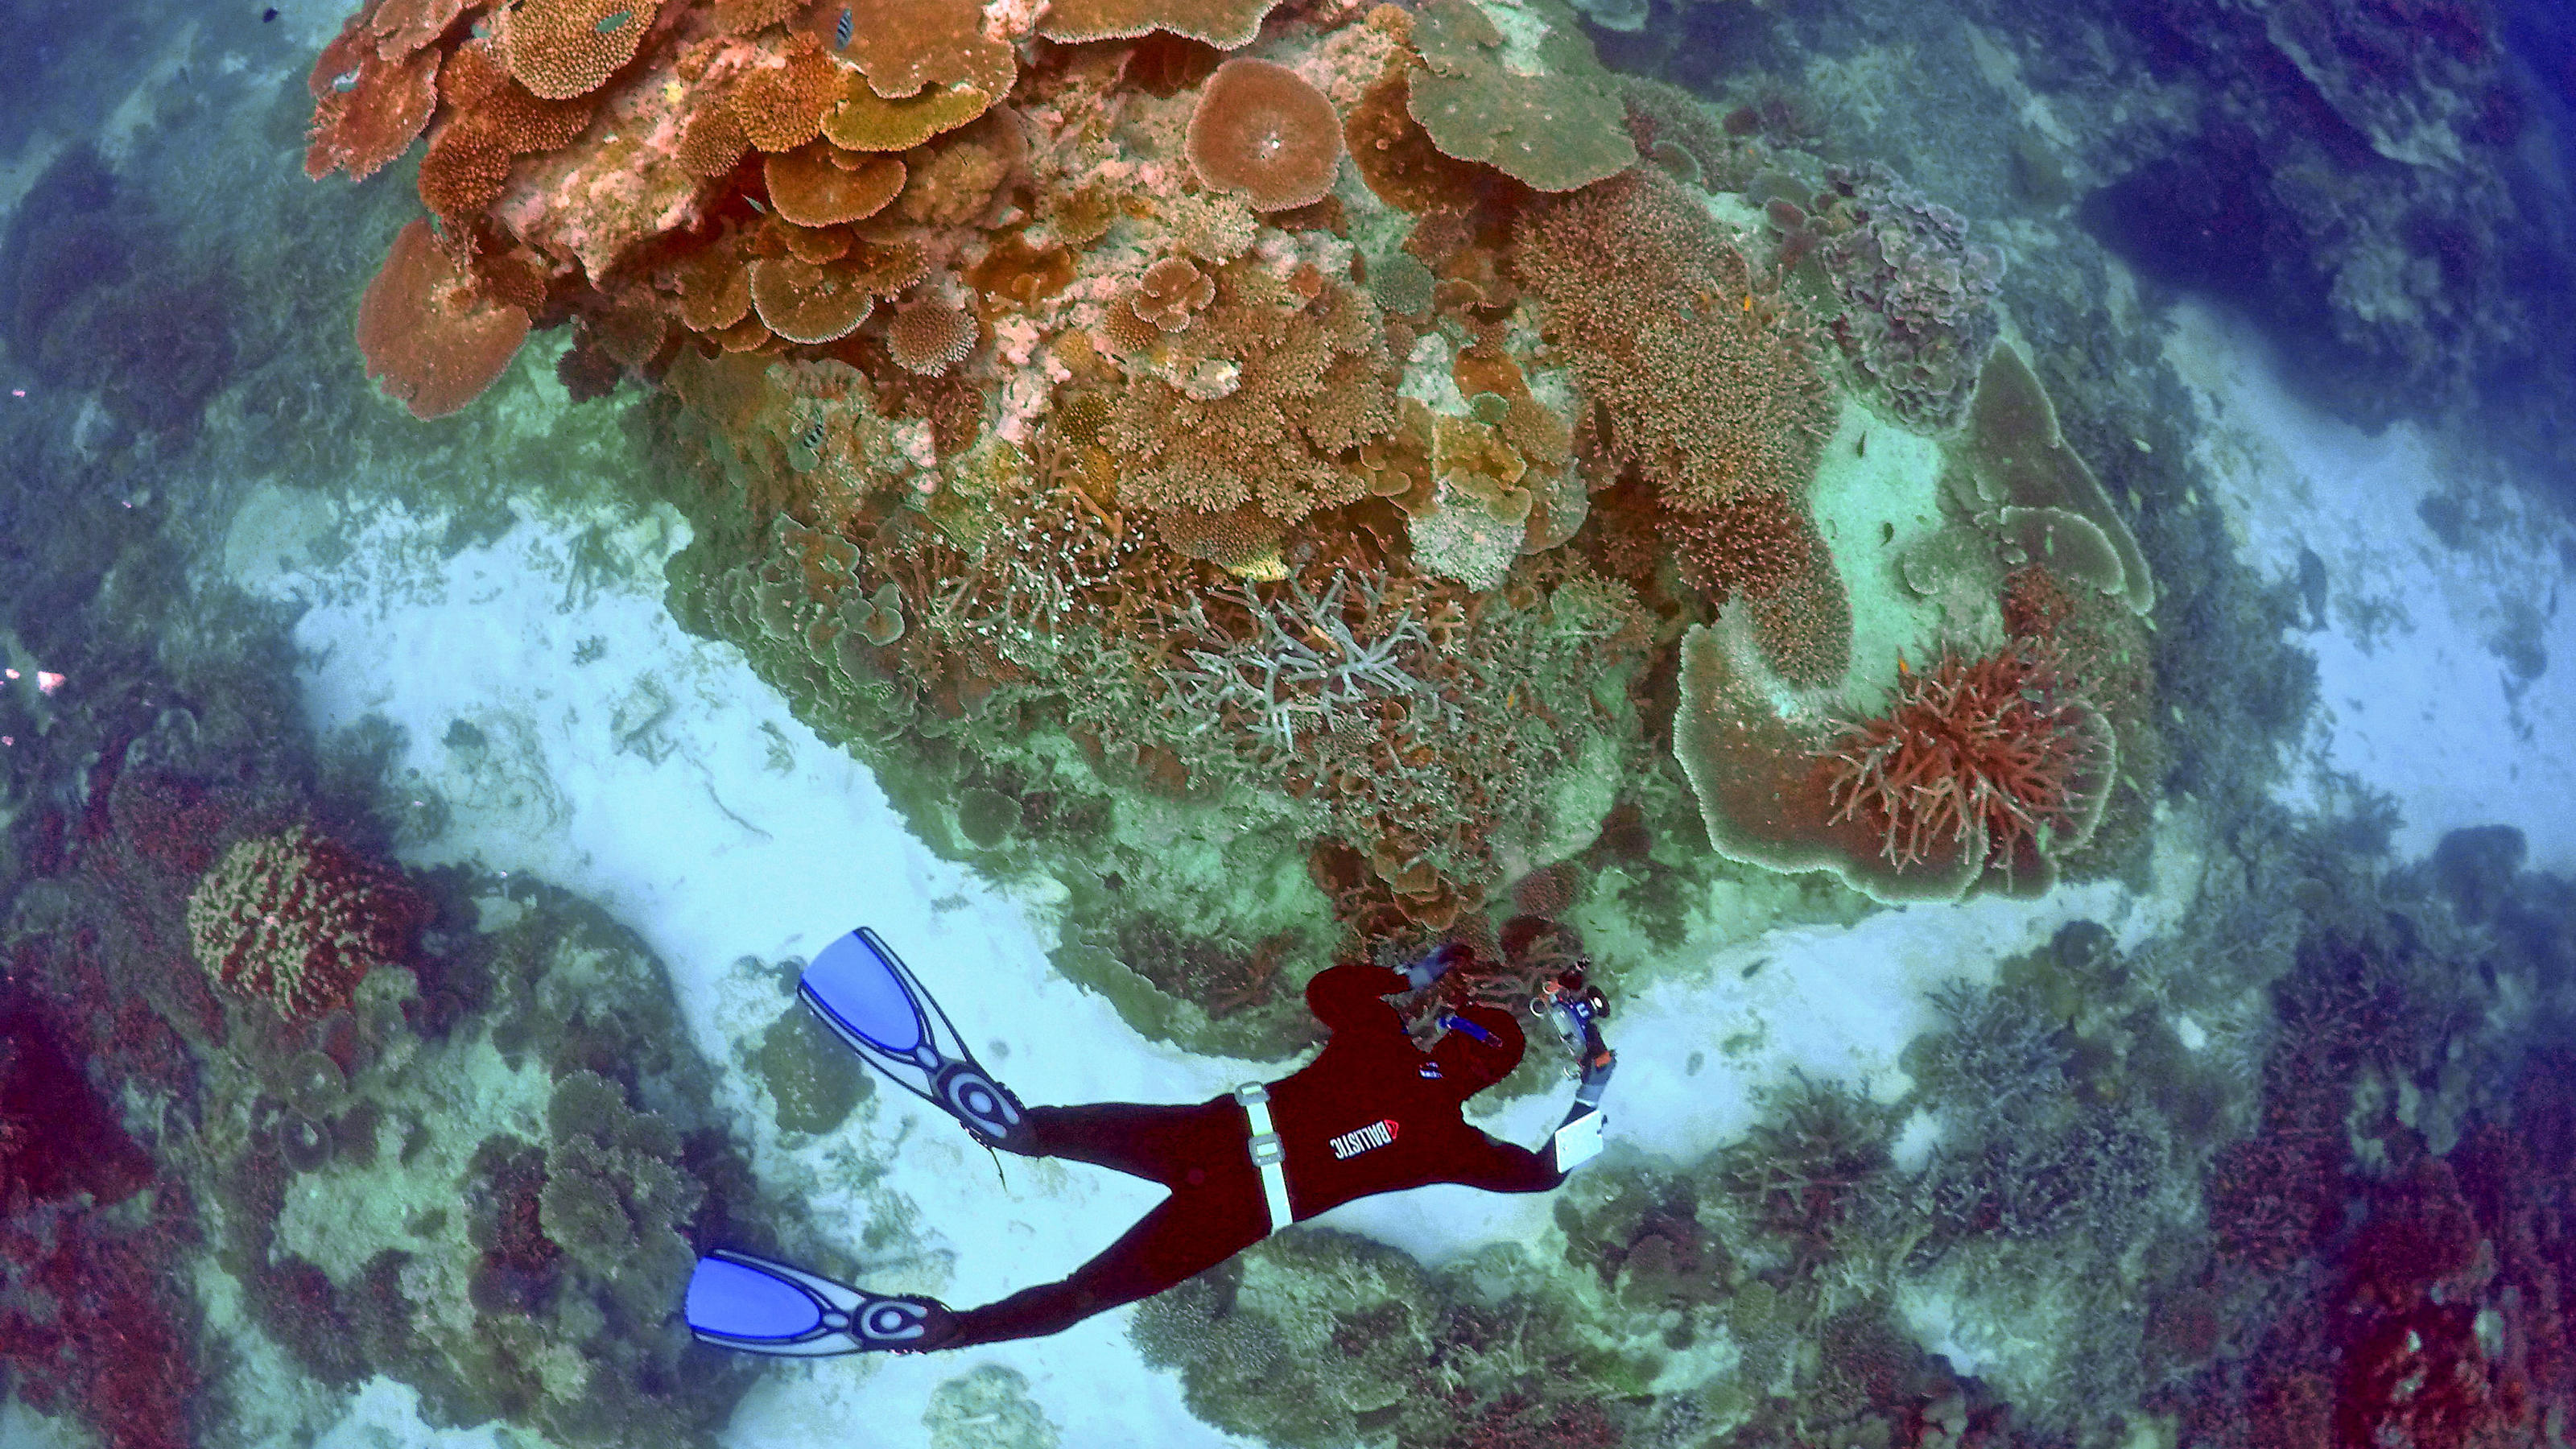 Australien will mit Millioneninvestition das Great Barrier Reef retten